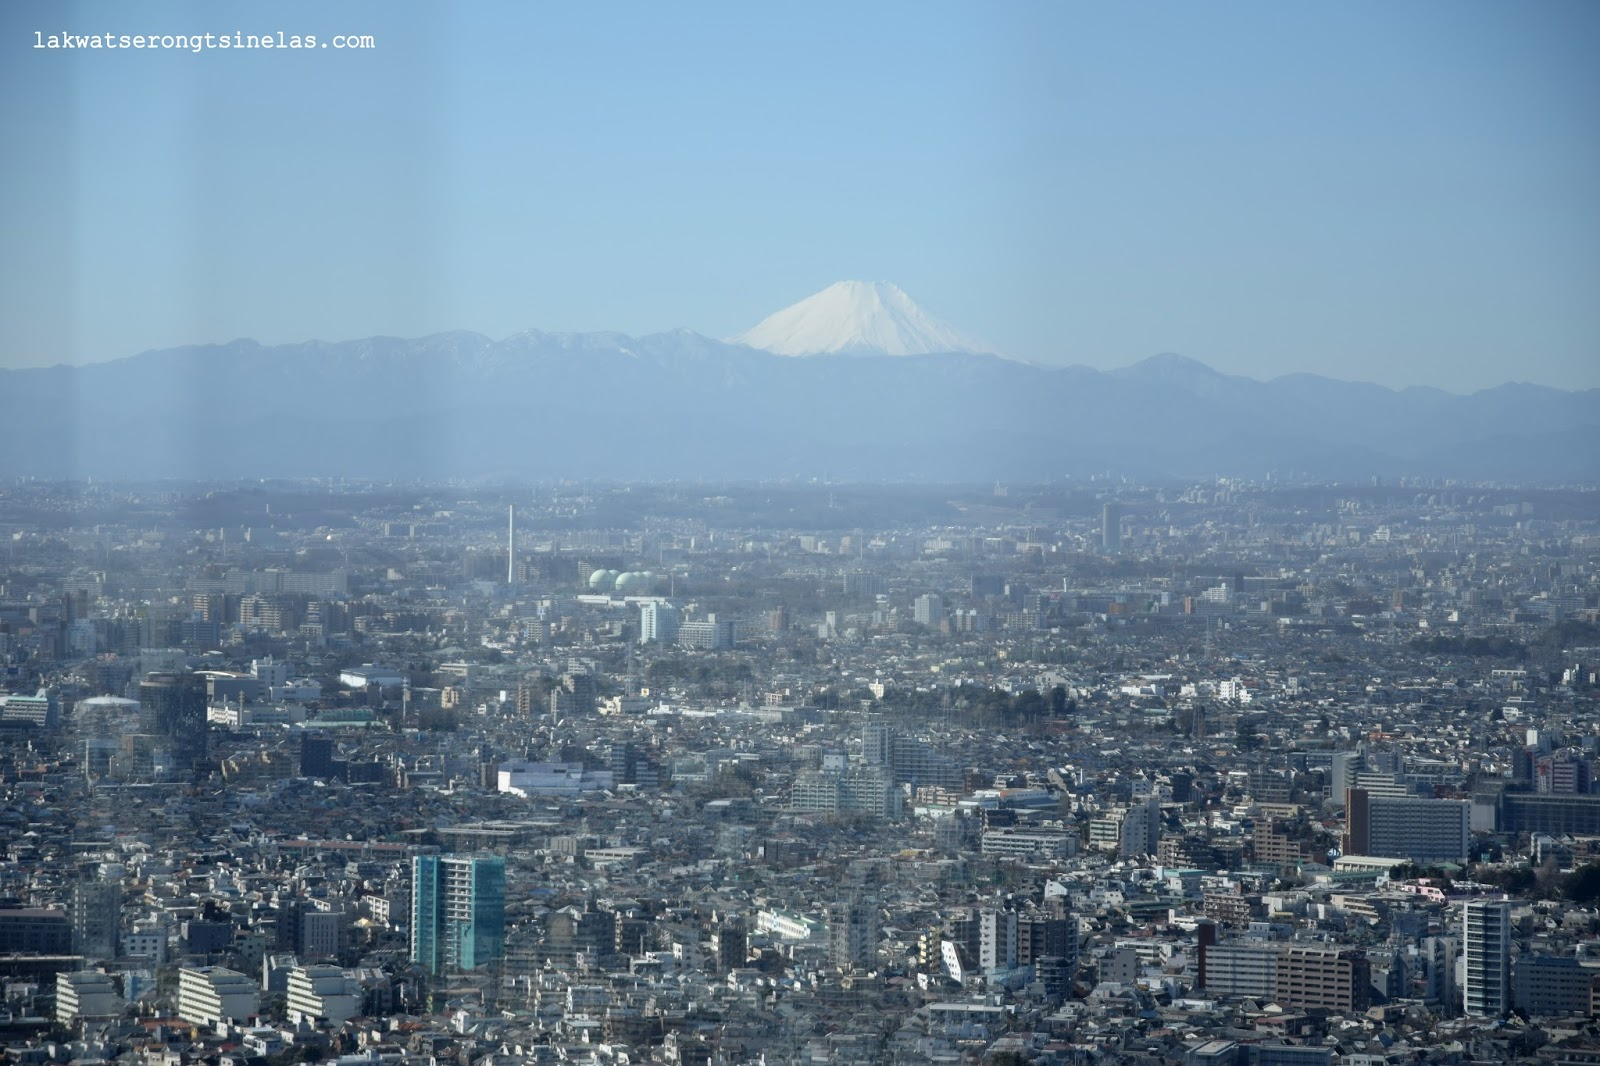 MT. FUJI VANTAGE POINTS THRU THE TOKYO METRO SUBWAY